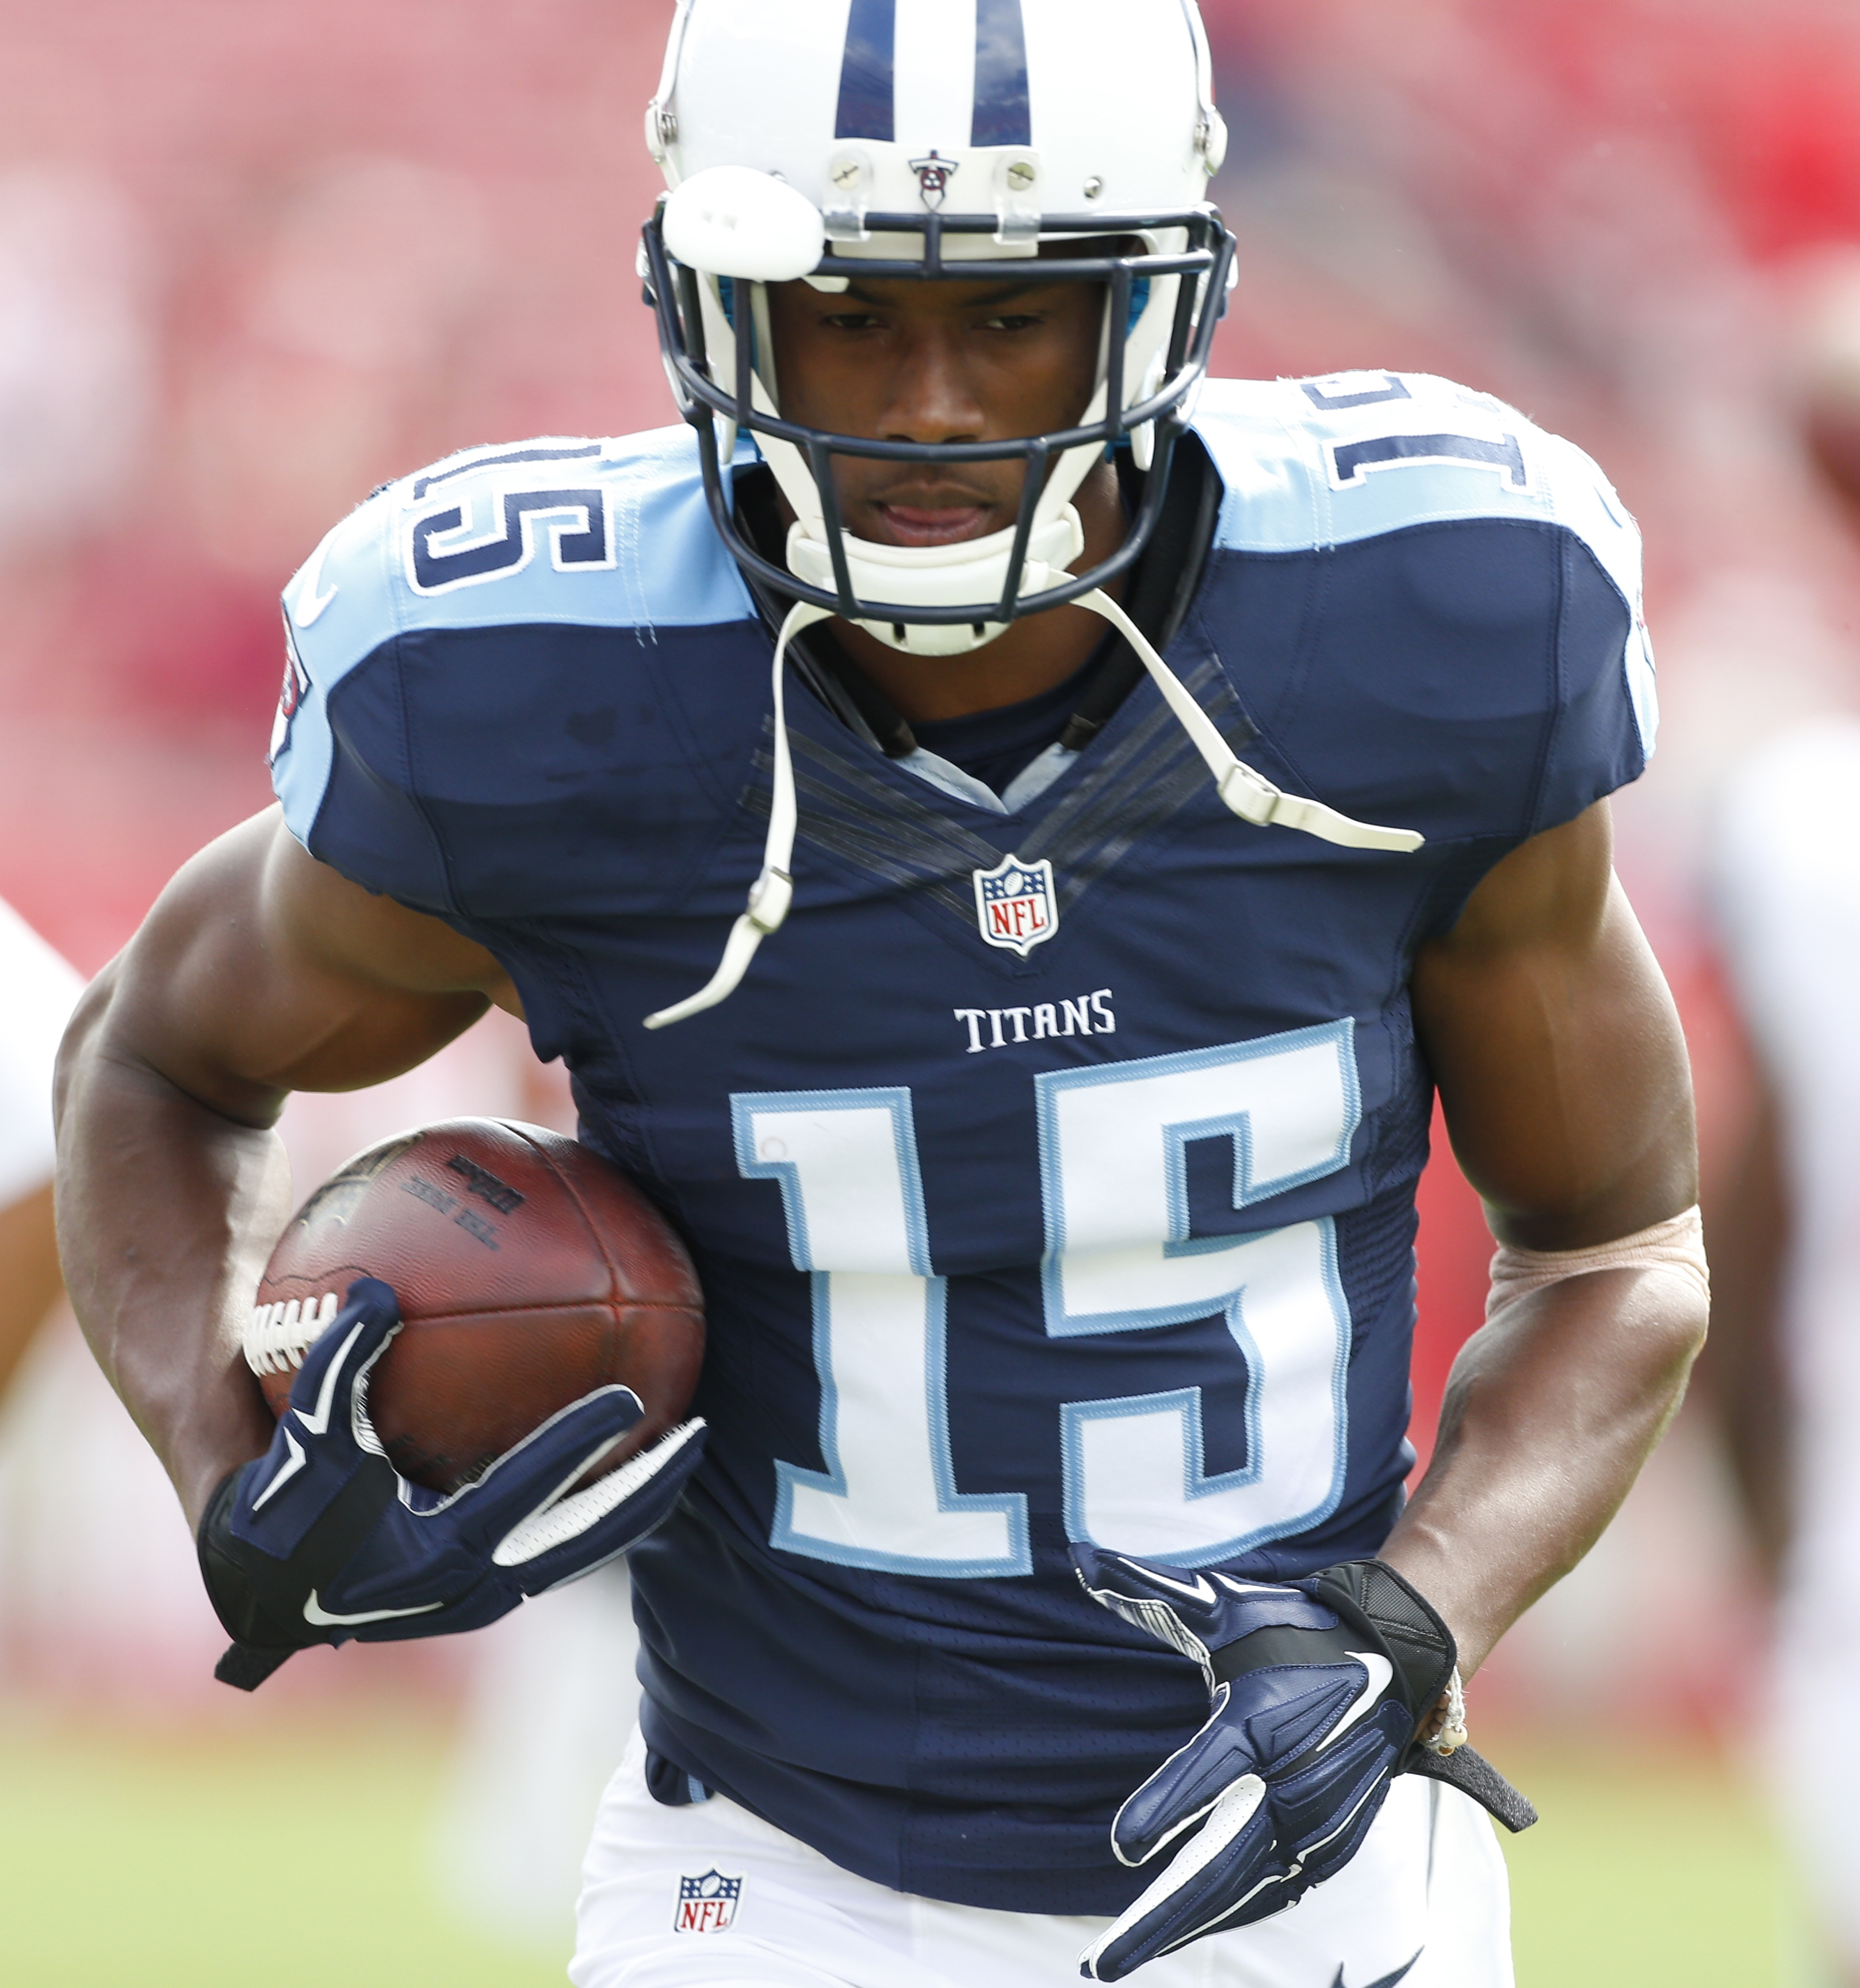 Tennessee Titans wide receiver Justin Hunter (15) warms up before an NFL football game against the Tampa Bay Buccaneers, Sunday, Sept. 13, 2015, in Tampa, Fla. (AP Photo/Brian Blanco)